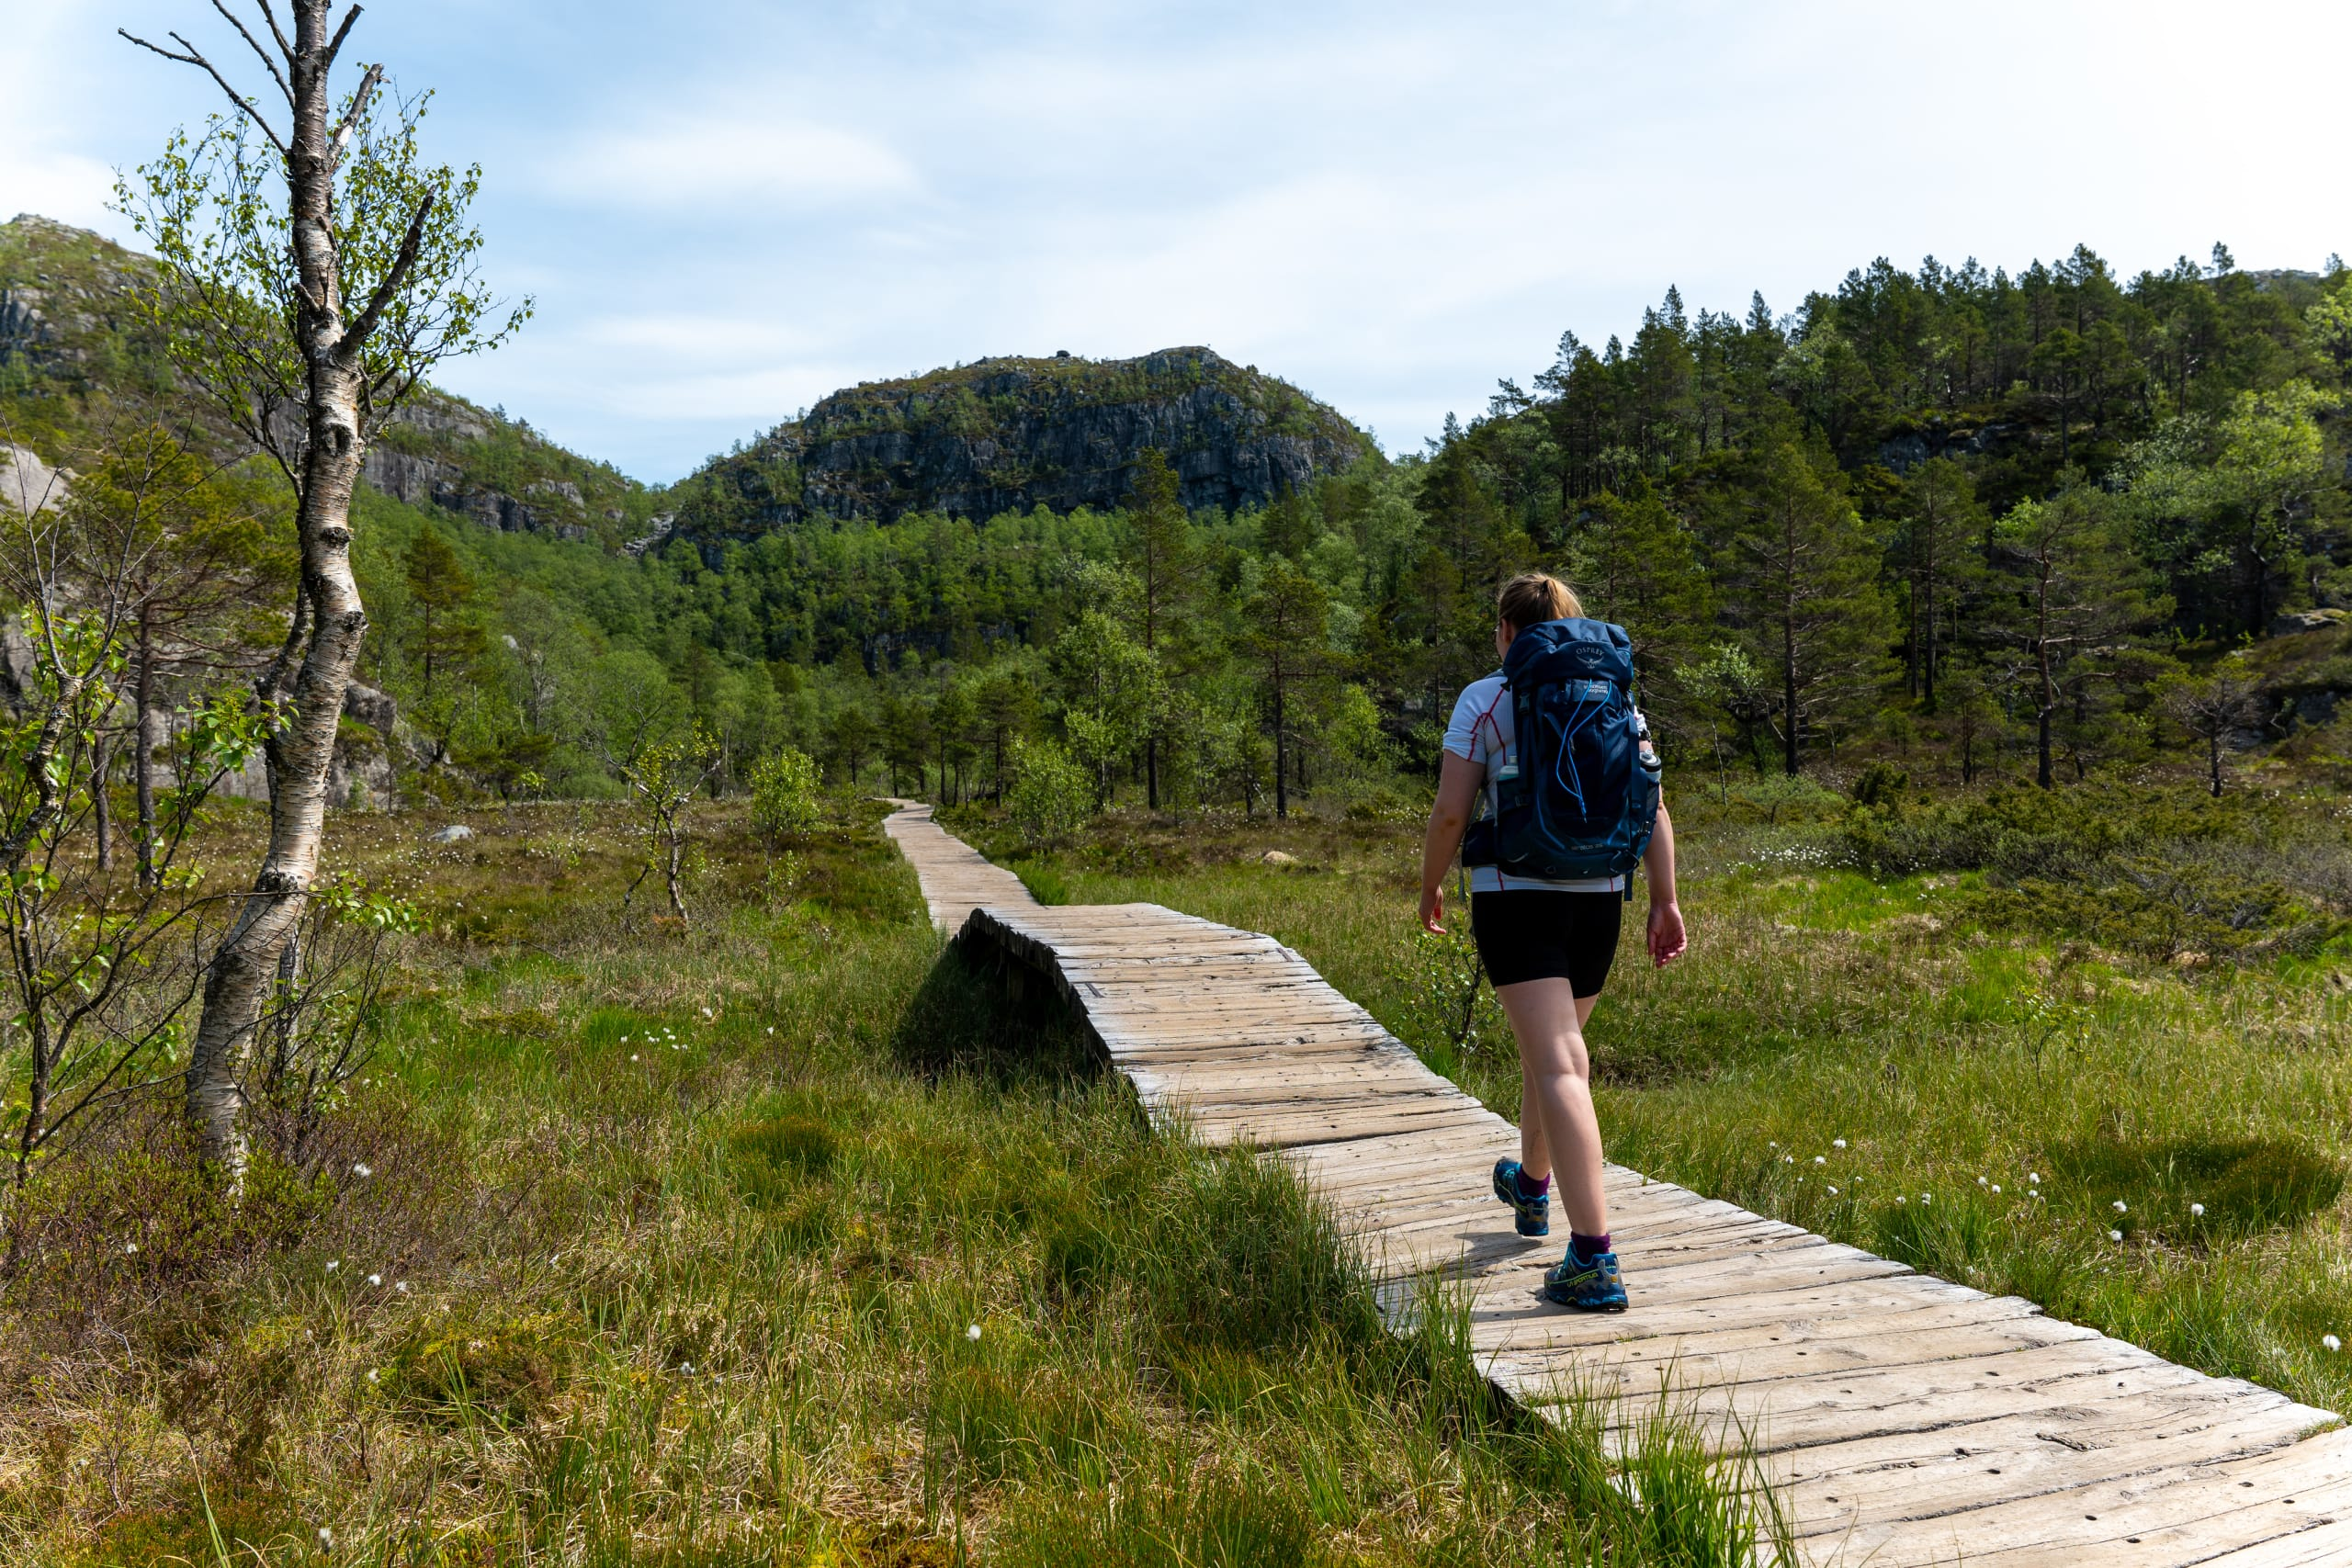 A hiker on his way to Preikestolen walking through lush terrain on a wooden path.